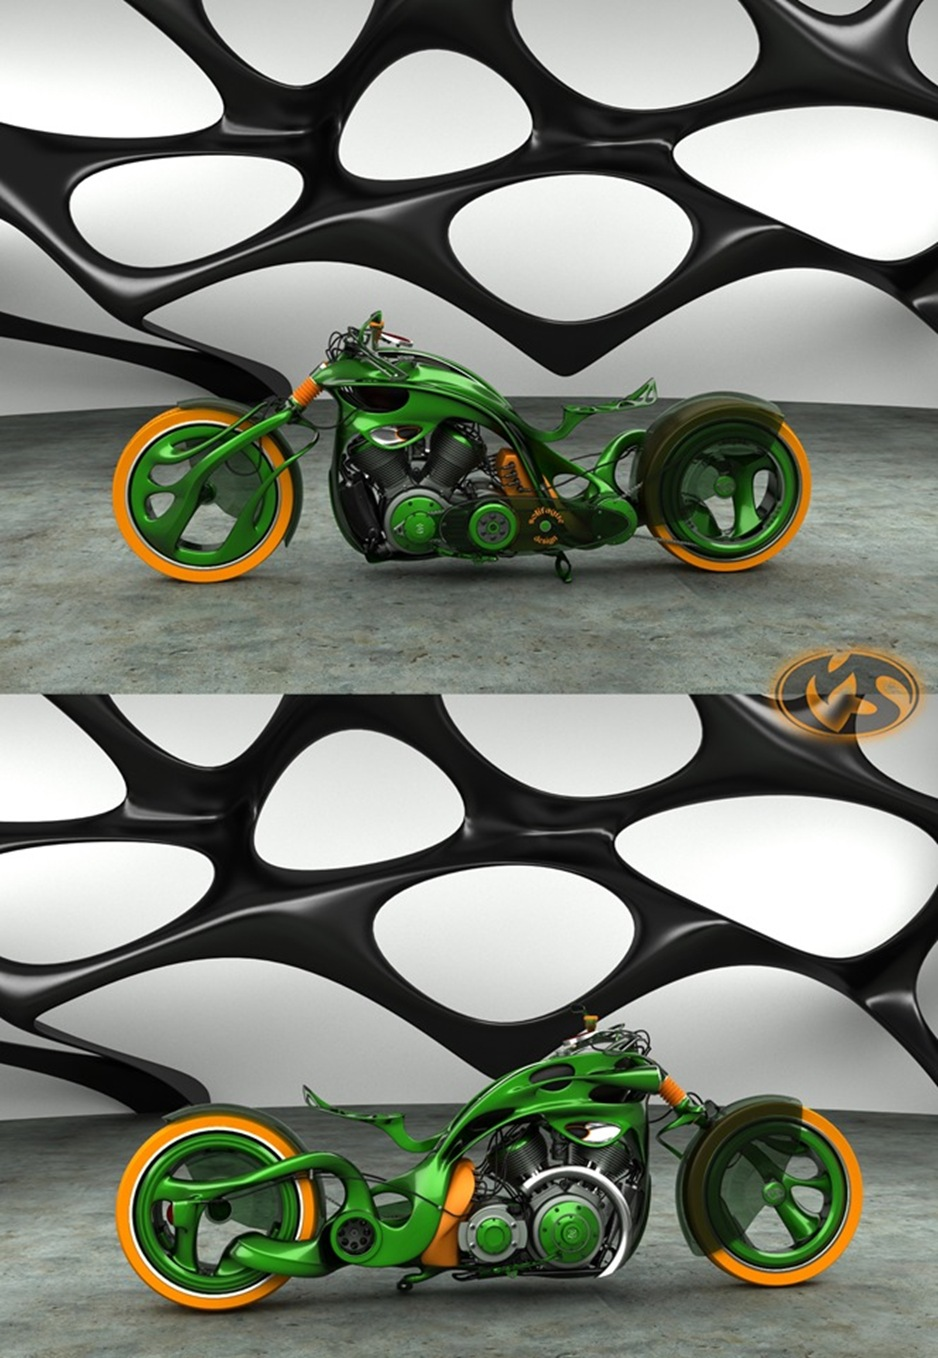 4 15787 thumb1 9 Seriously Sick Sleds by Solif: Creative Custom Choppers